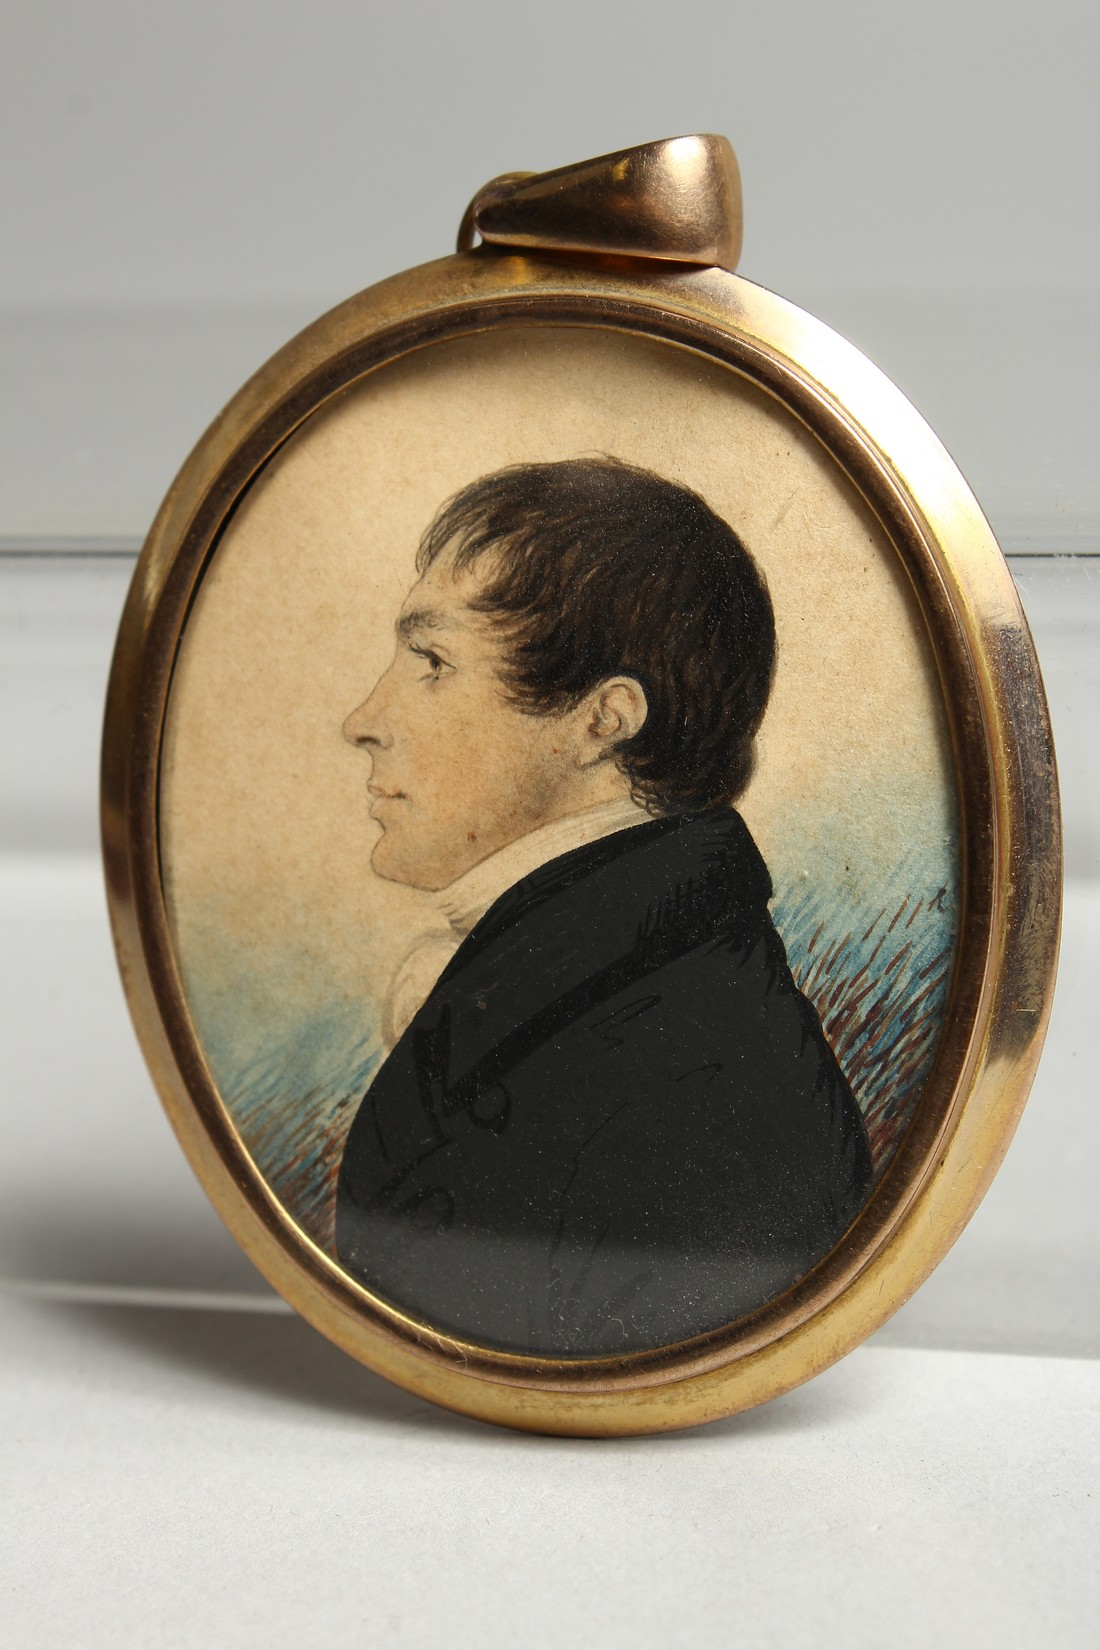 AN EARLY VICTORIAN OVAL MINIATURE OF A GENTLEMAN in a gilt frame. 2.25ins x 1.75ins - Image 2 of 7